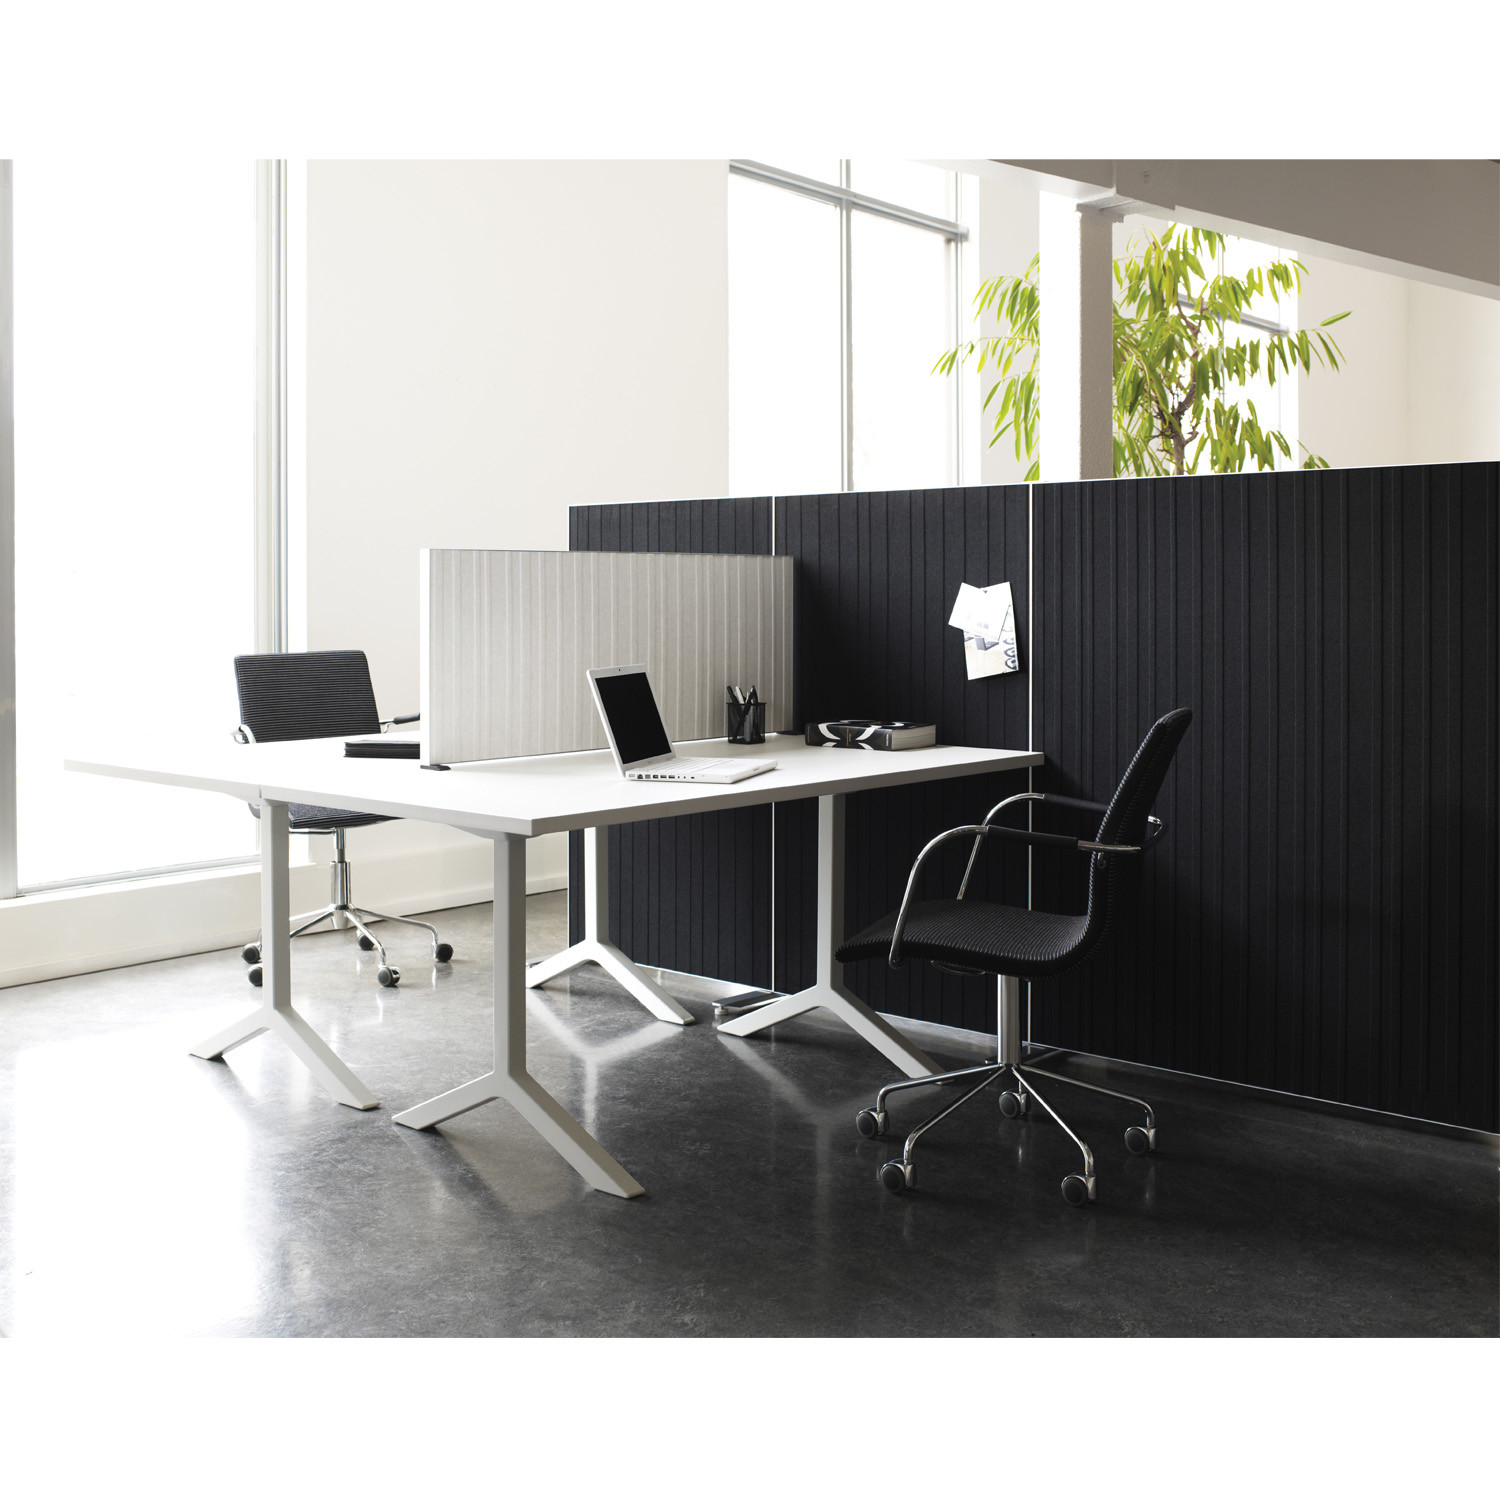 Alumi Desk Screens